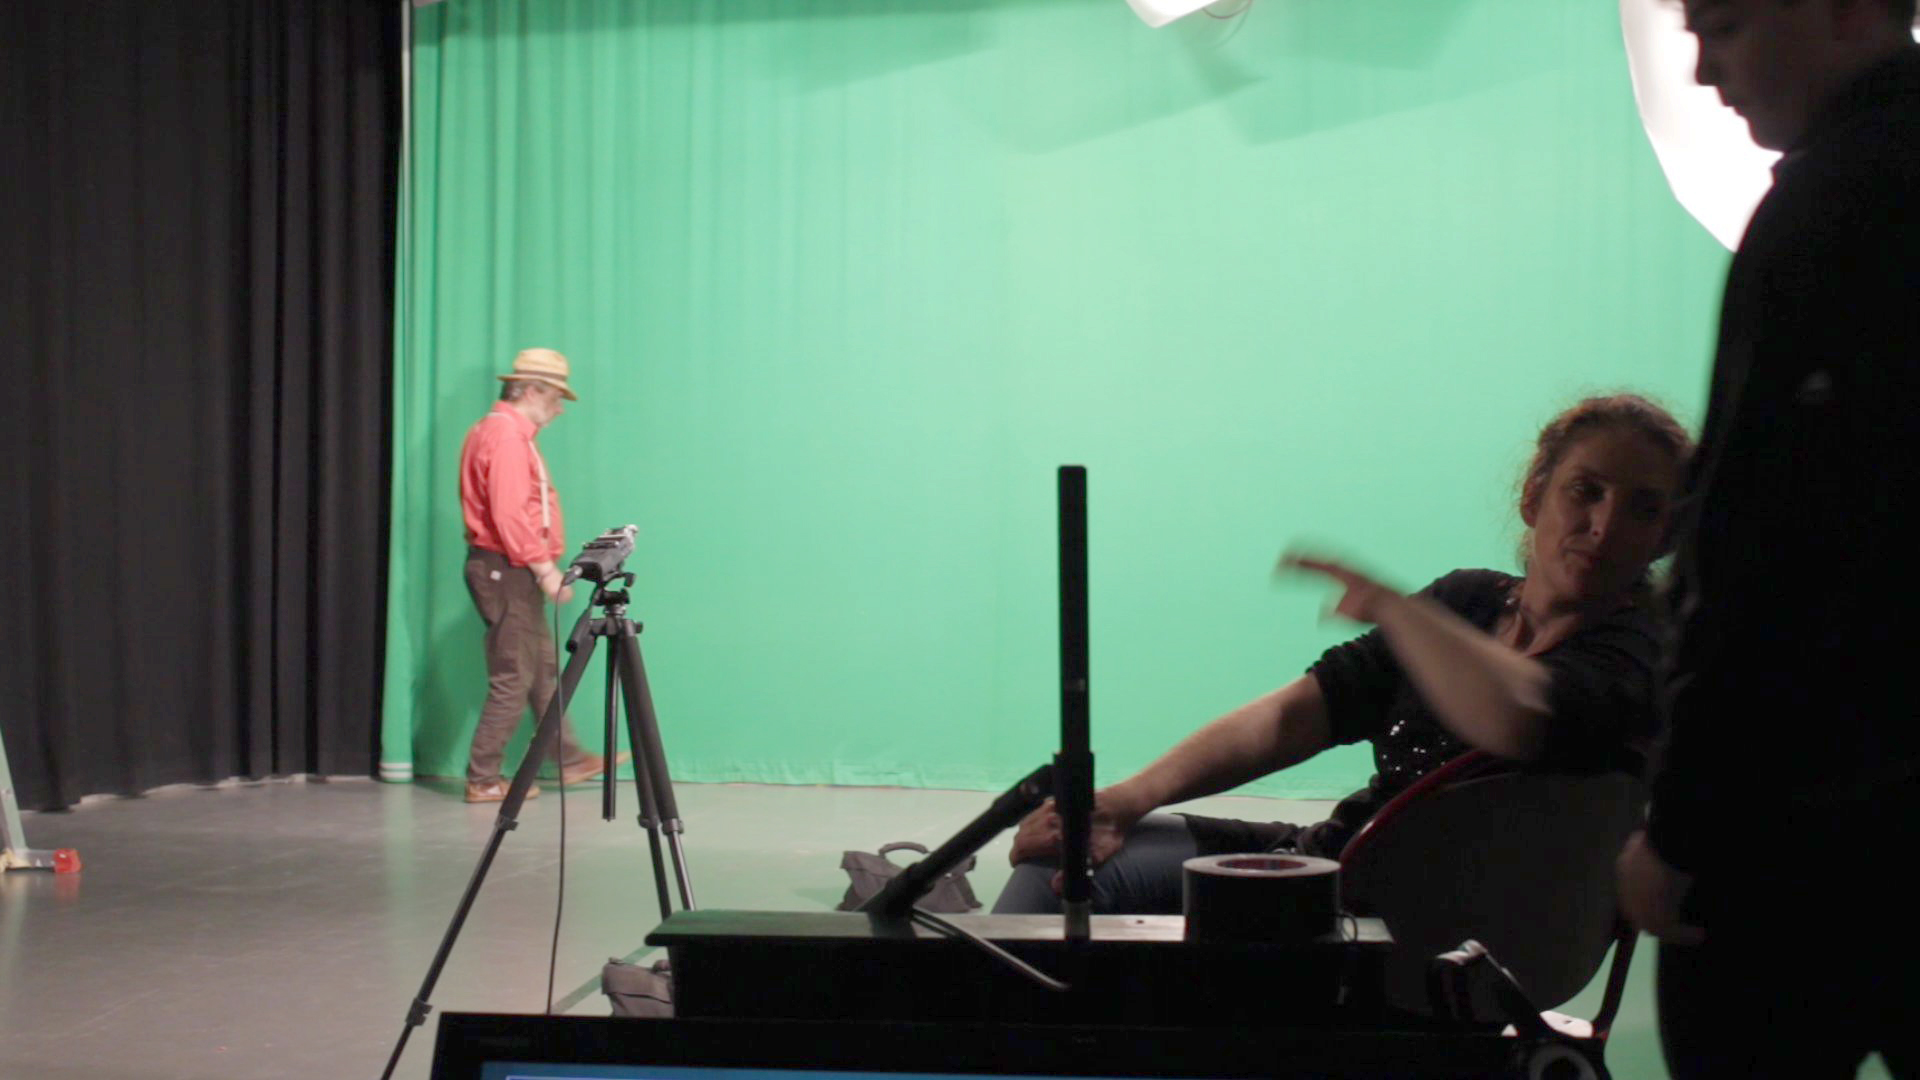 Director of the Making Of